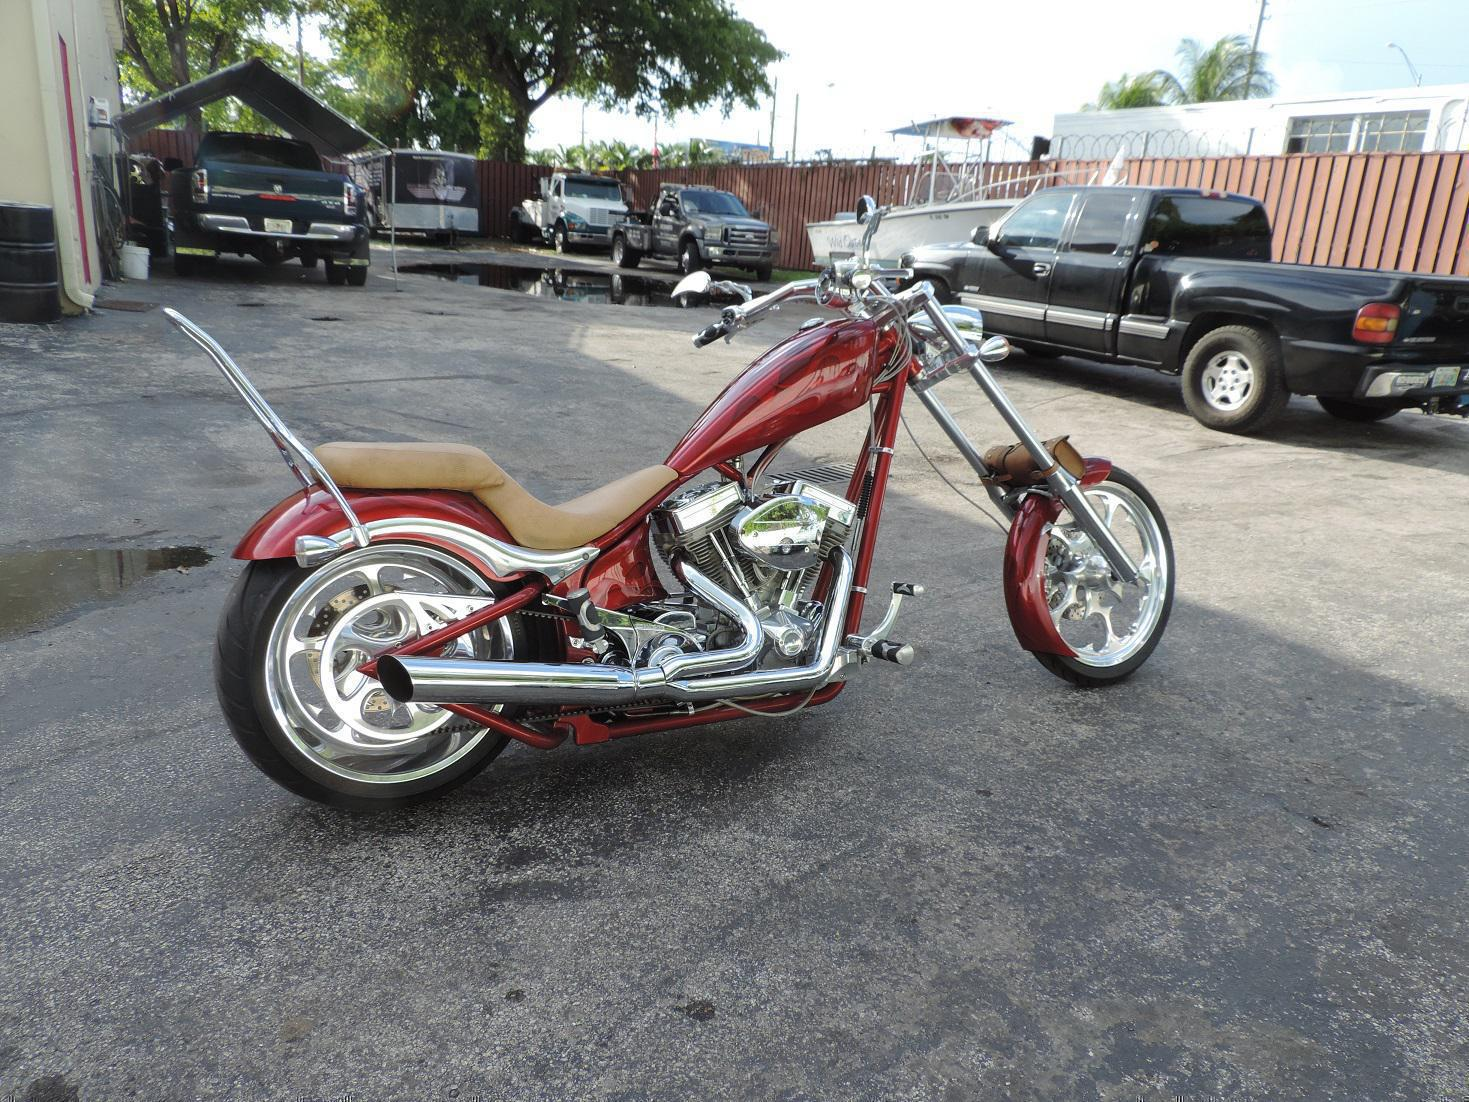 See more photos for this Big Dog Motorcycles K-9 Chopper, 2006 motorcycle listing